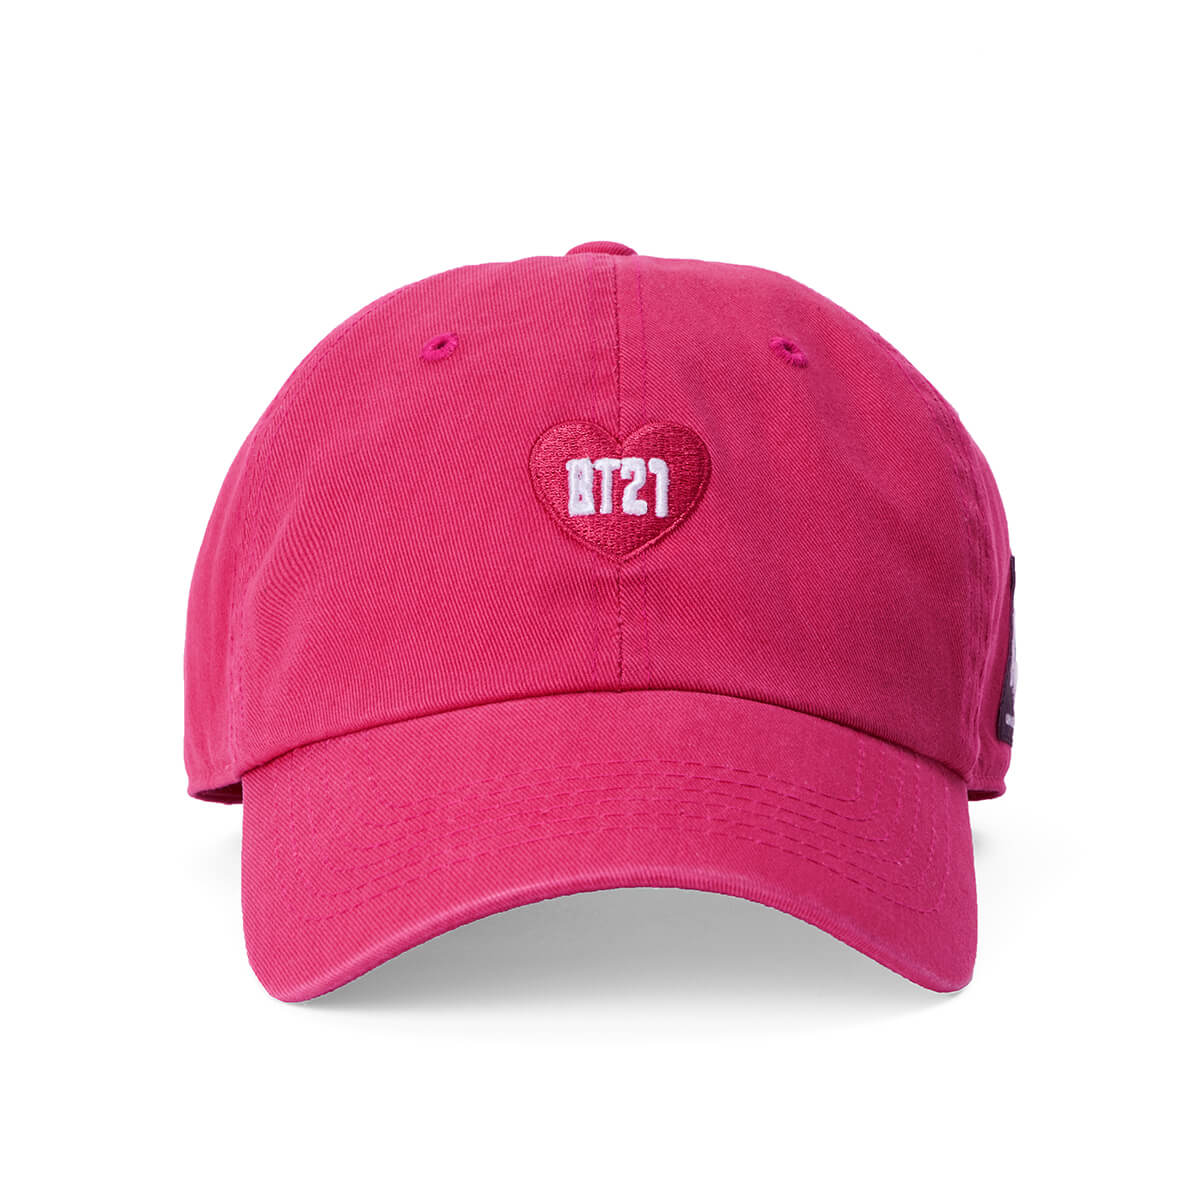 BT21 Heart Embroidered Twill Baseball Cap